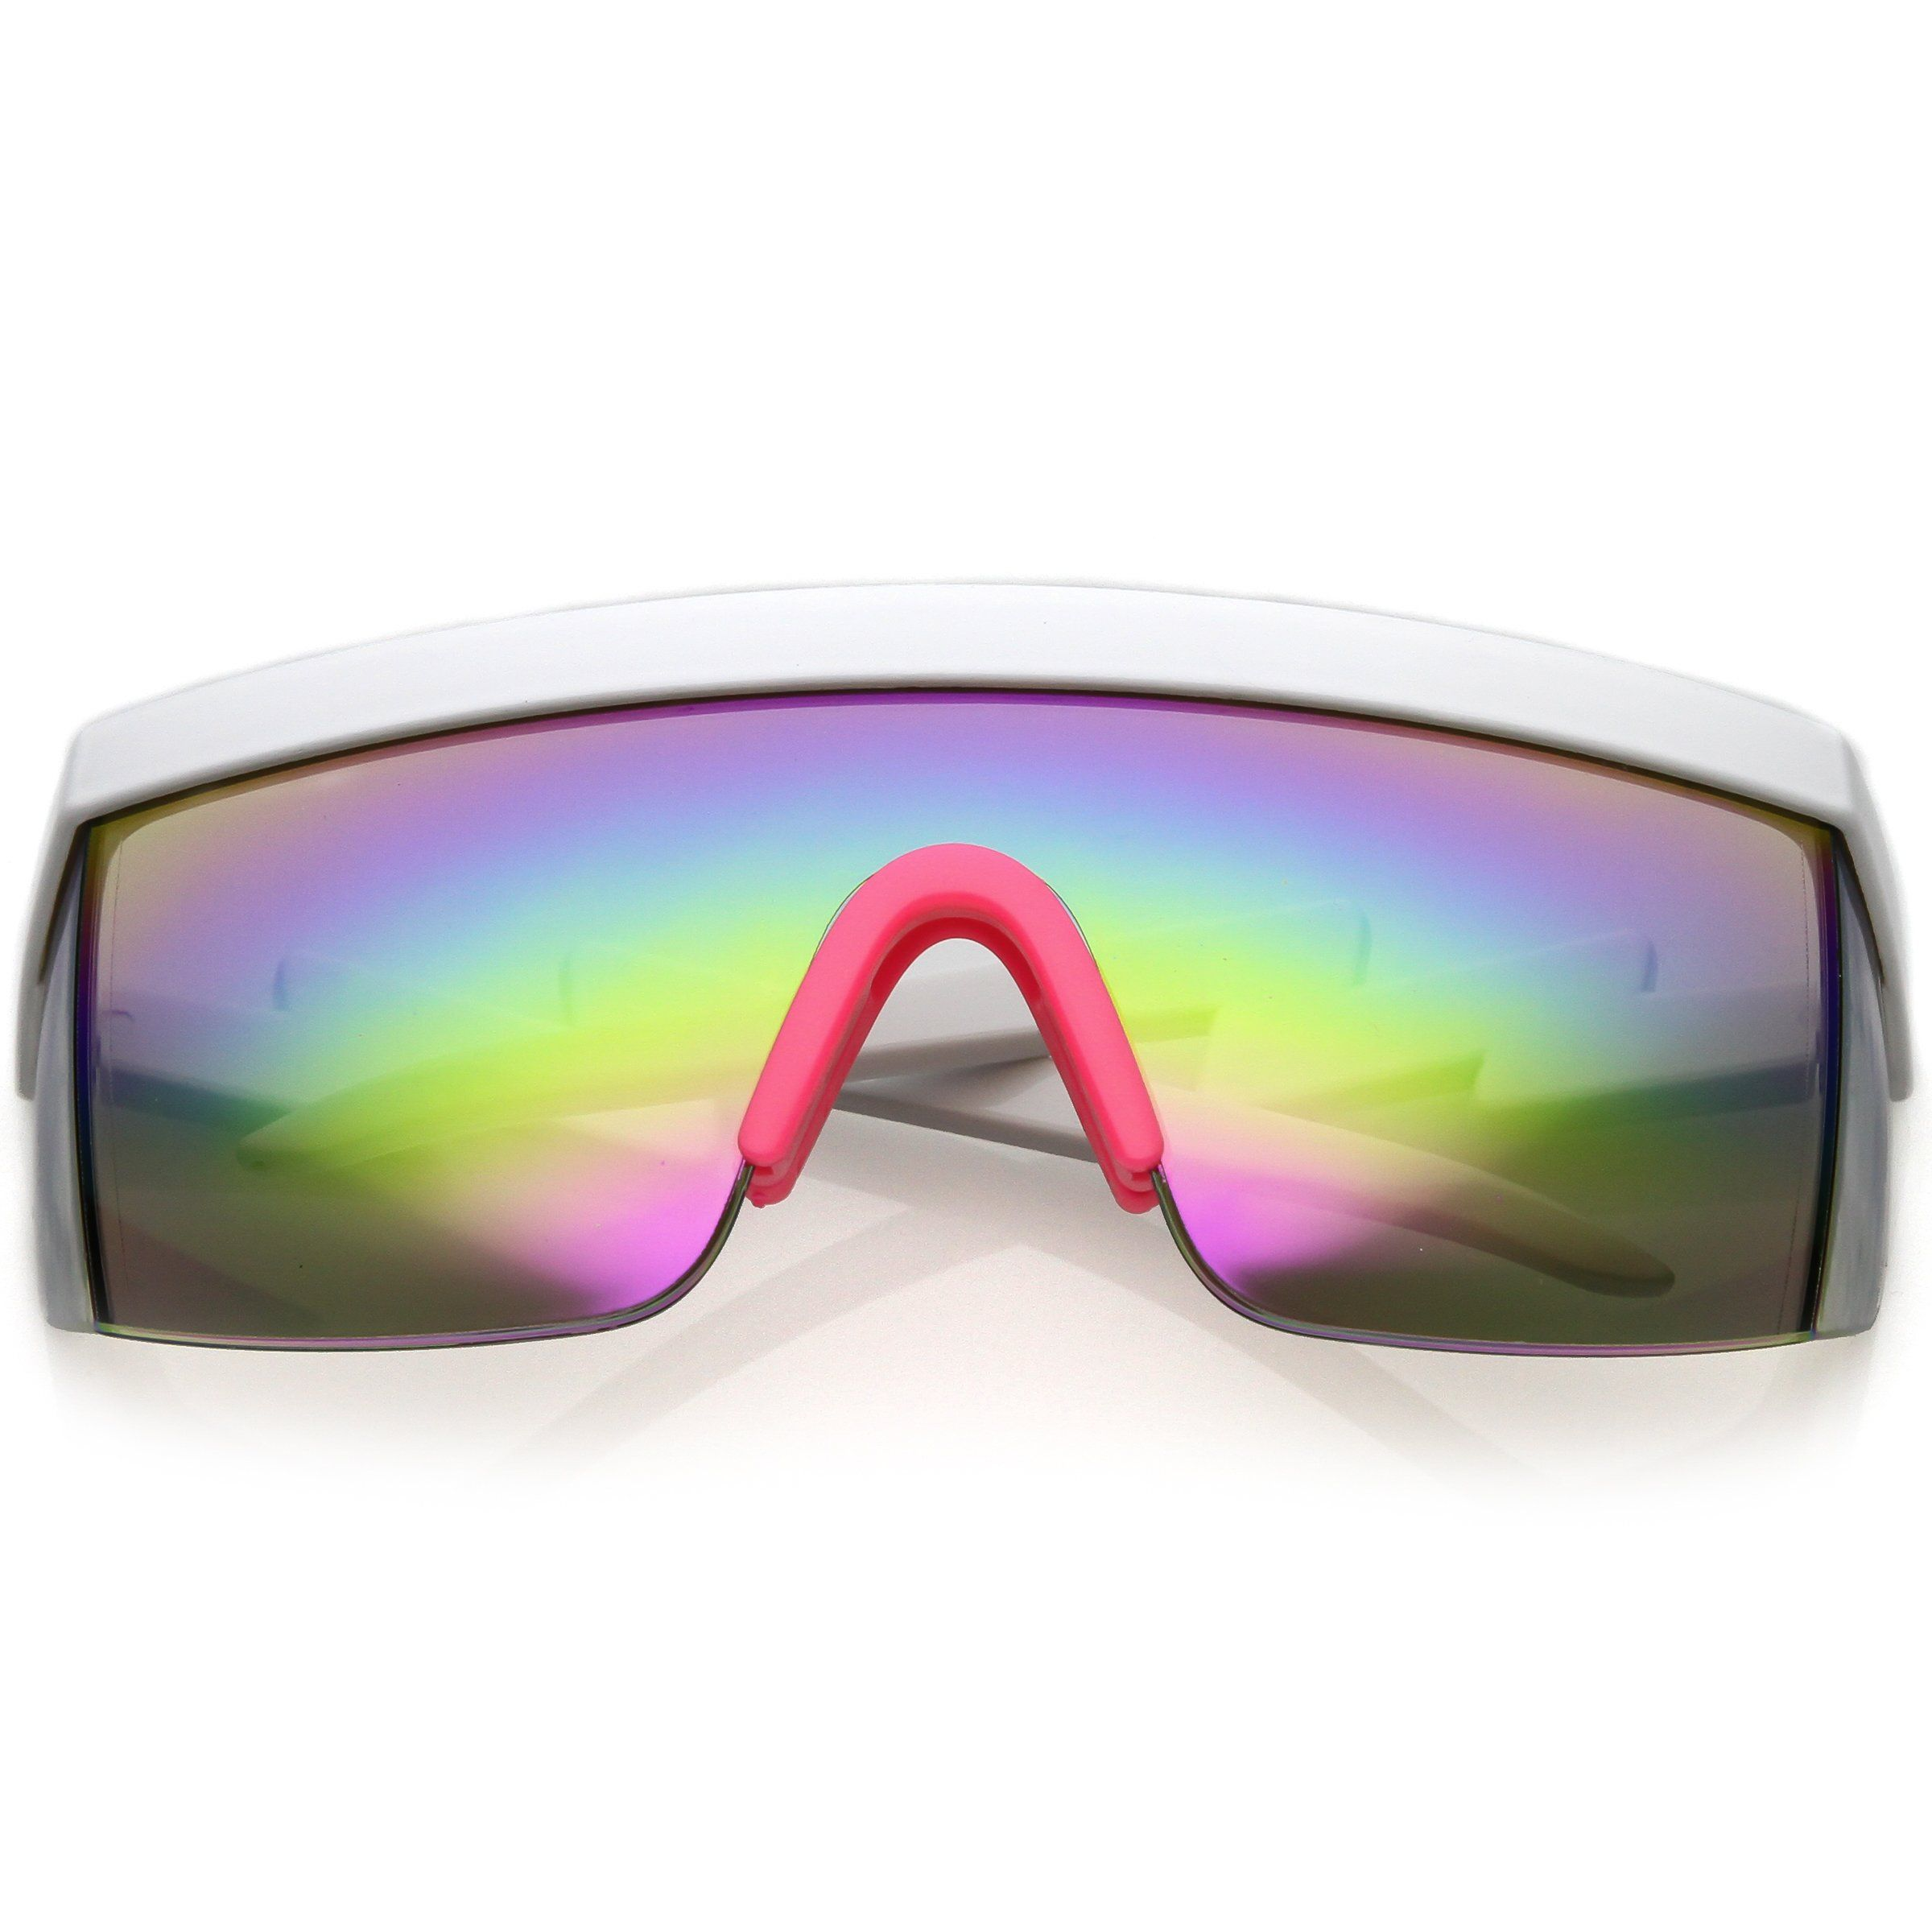 b1dd61eb01 Retro Flat Top Rainbow Mirrored Goggle Shield Sunglasses C545 ...